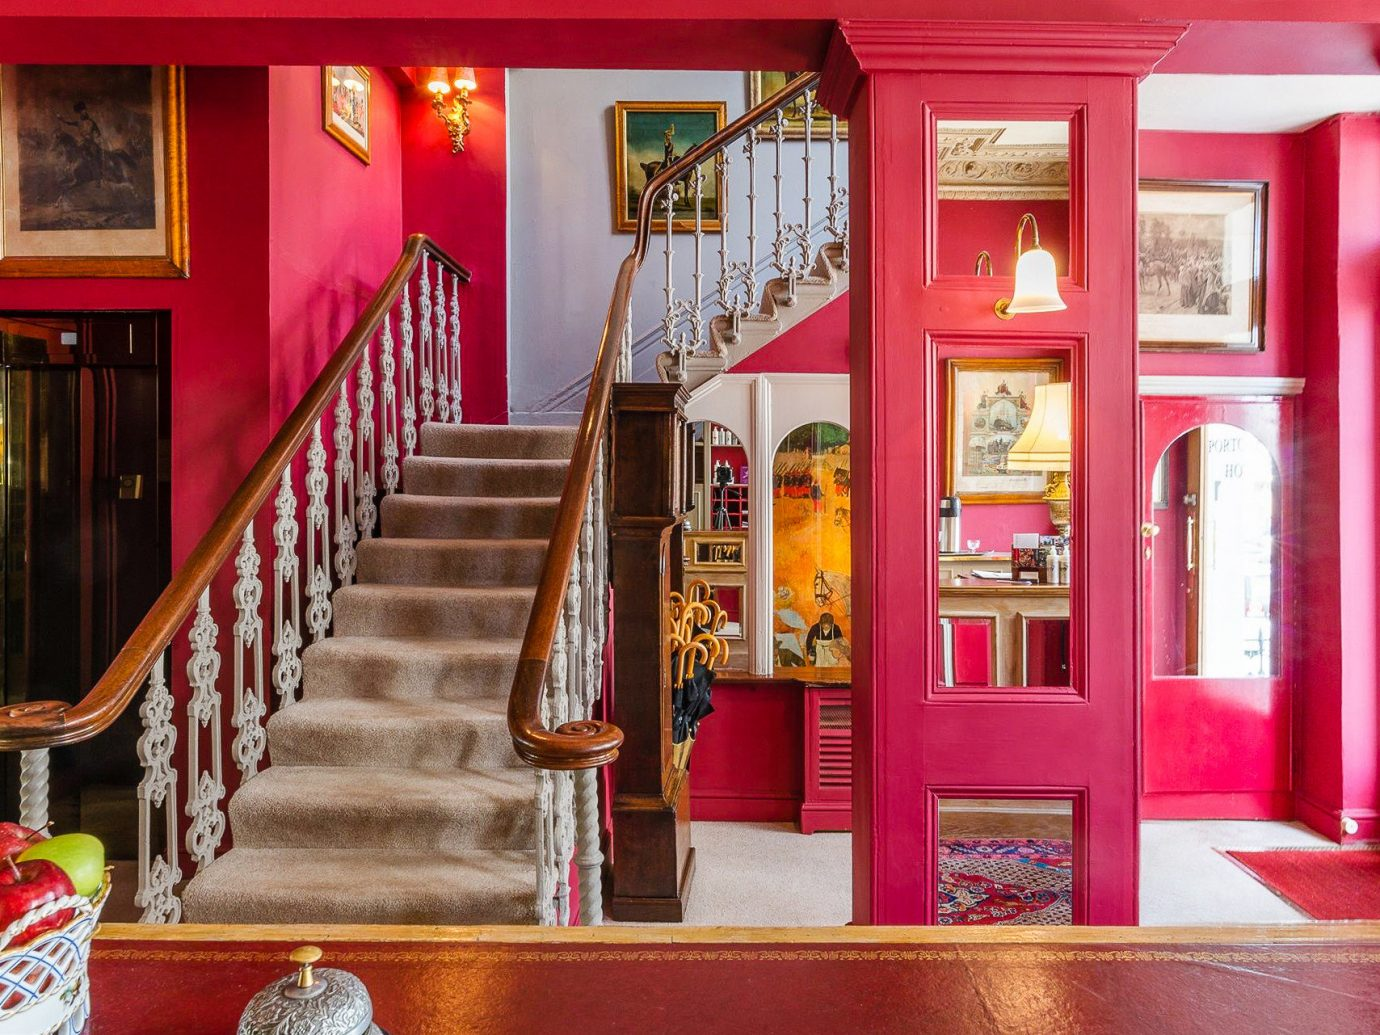 Boutique Hotels London Romantic Hotels red room interior design home house colorful colored